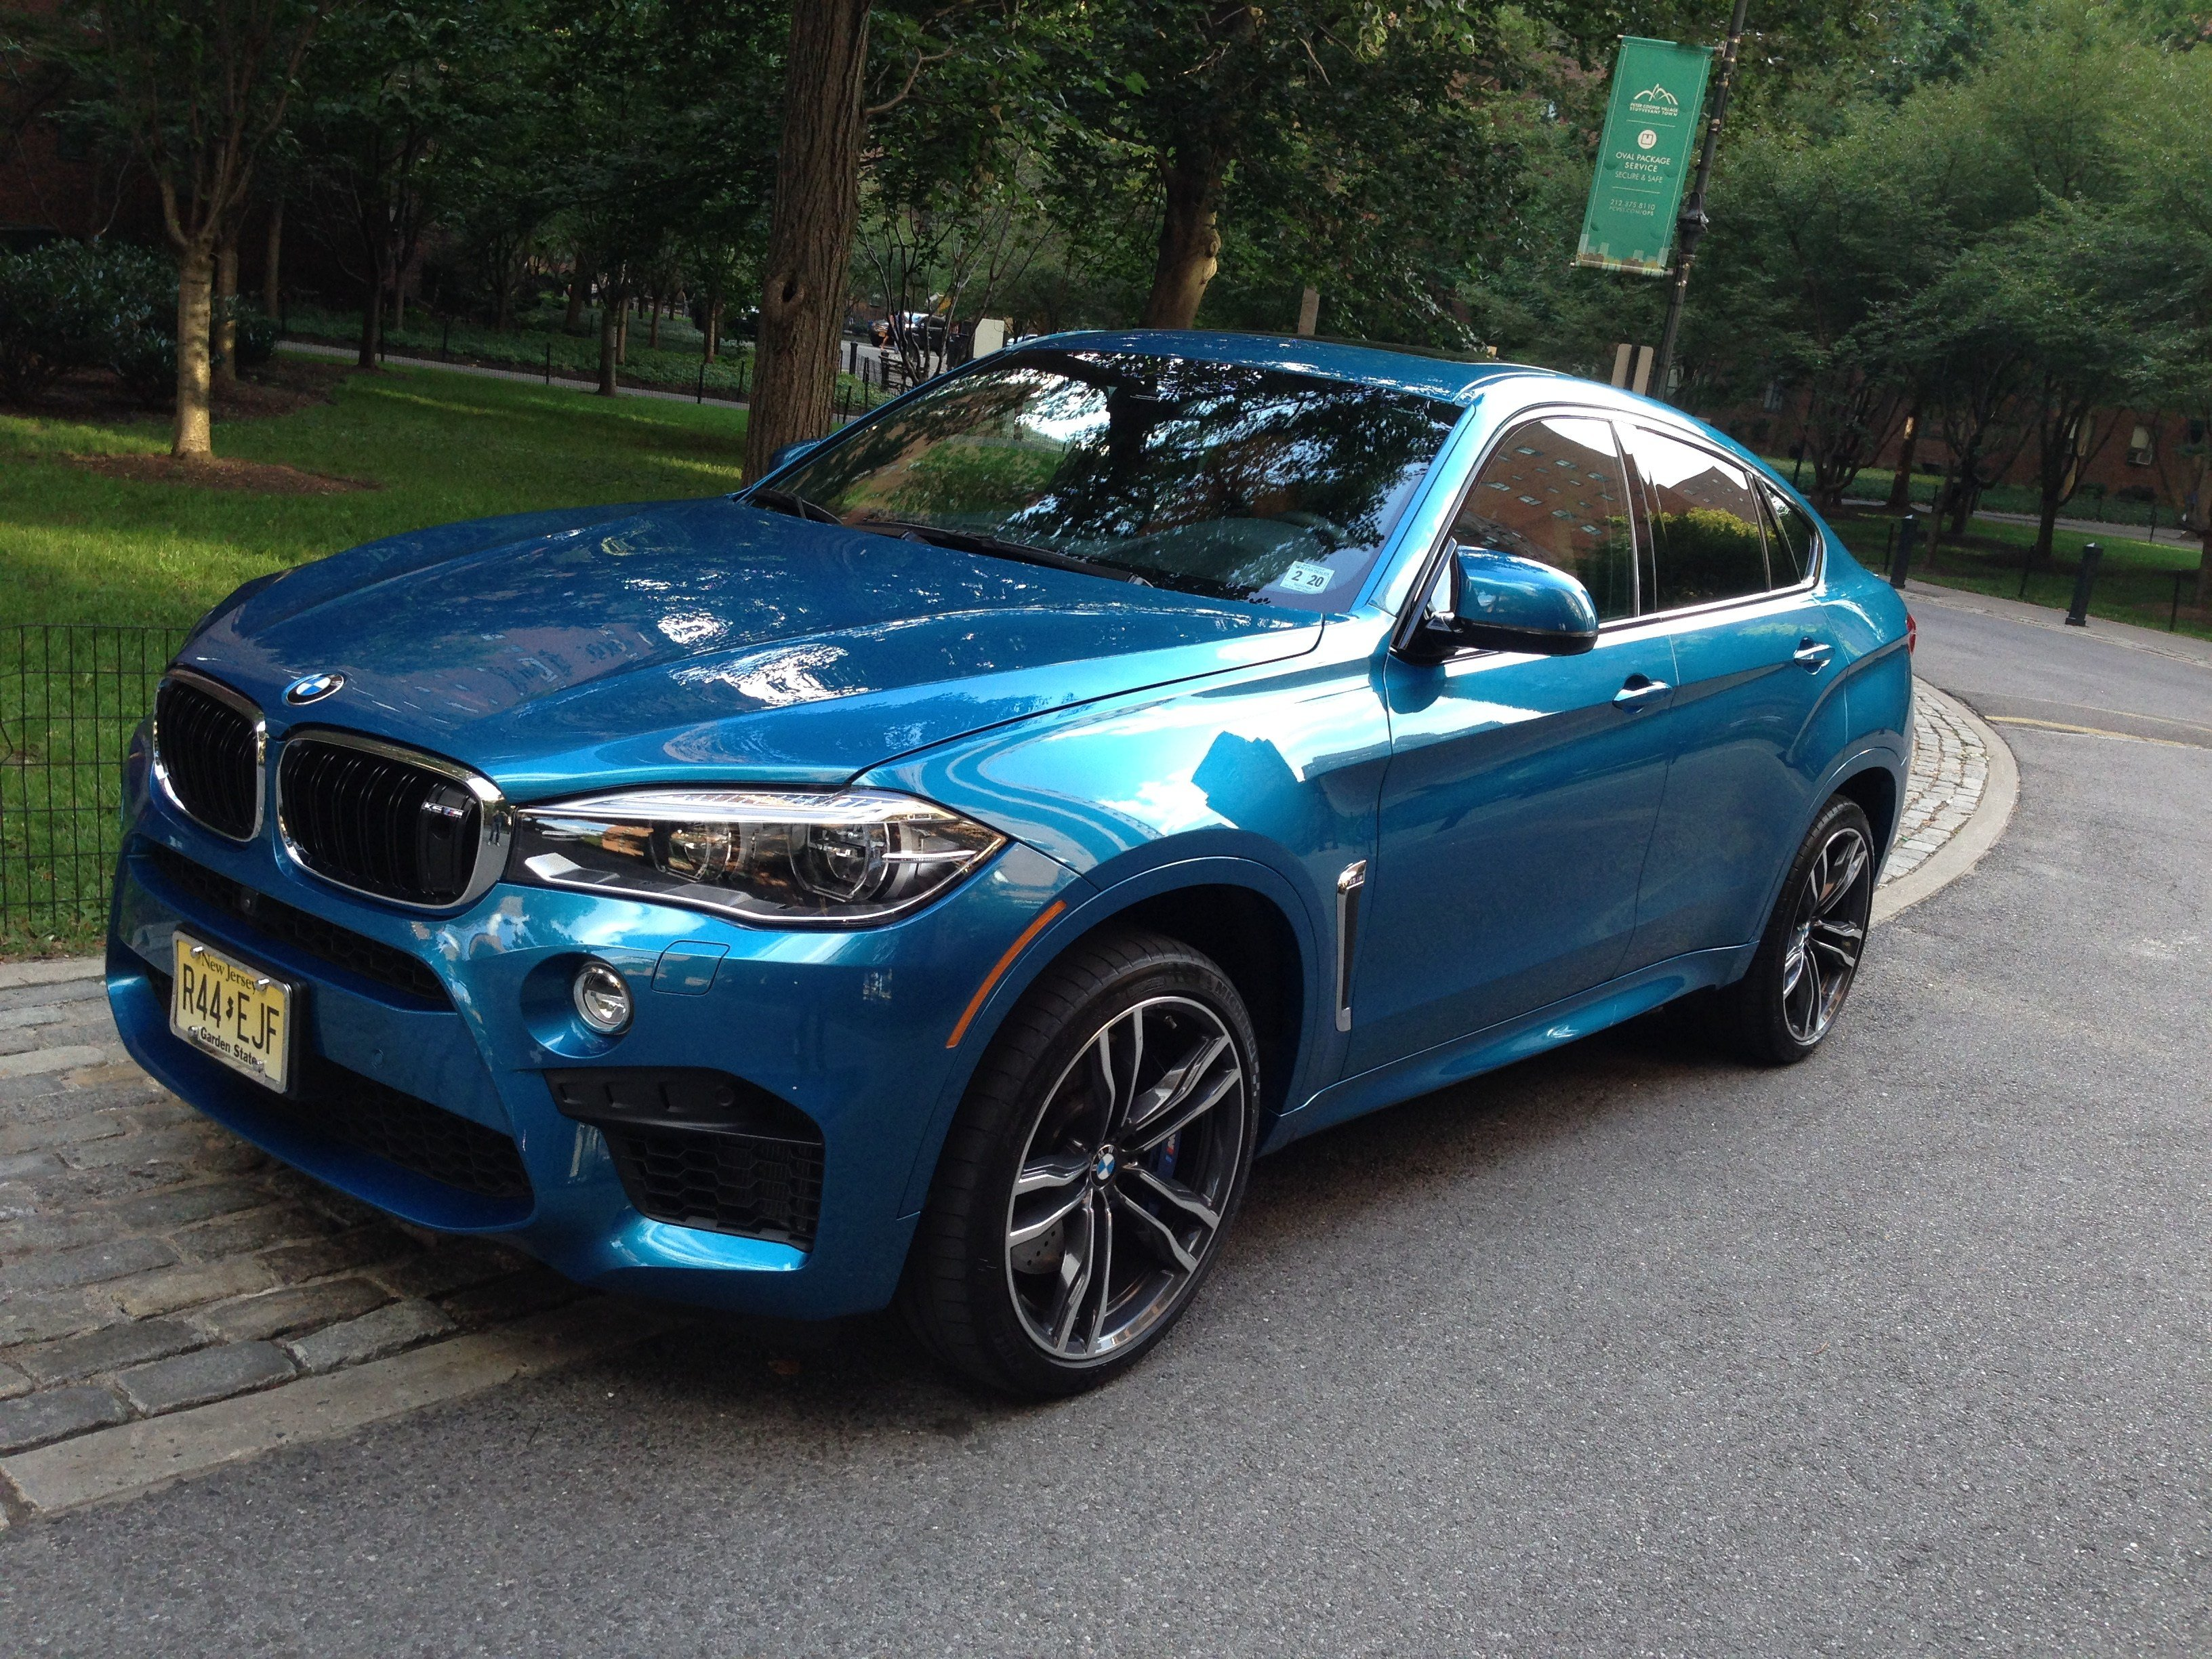 Latest The Bmw X6 M Is Definitely One Of The Weirdest Cars I Ve Free Download